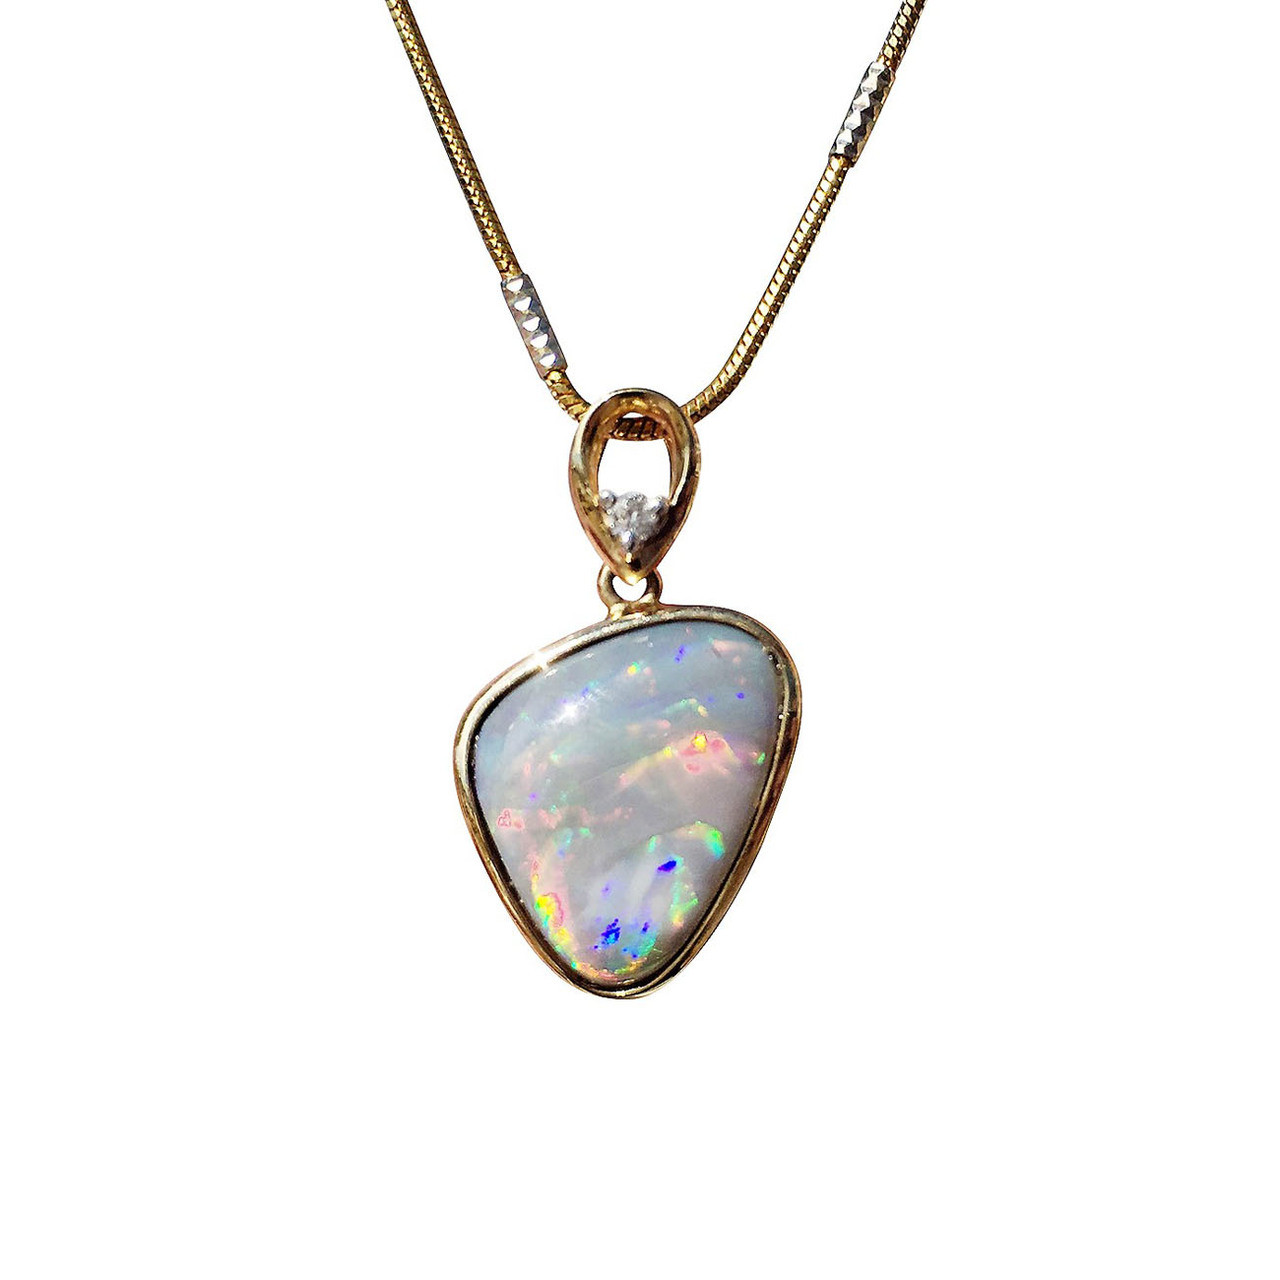 jewelry white black product gold pear shape shipping today opal oravo pendant overstock free watches necklace diamond created